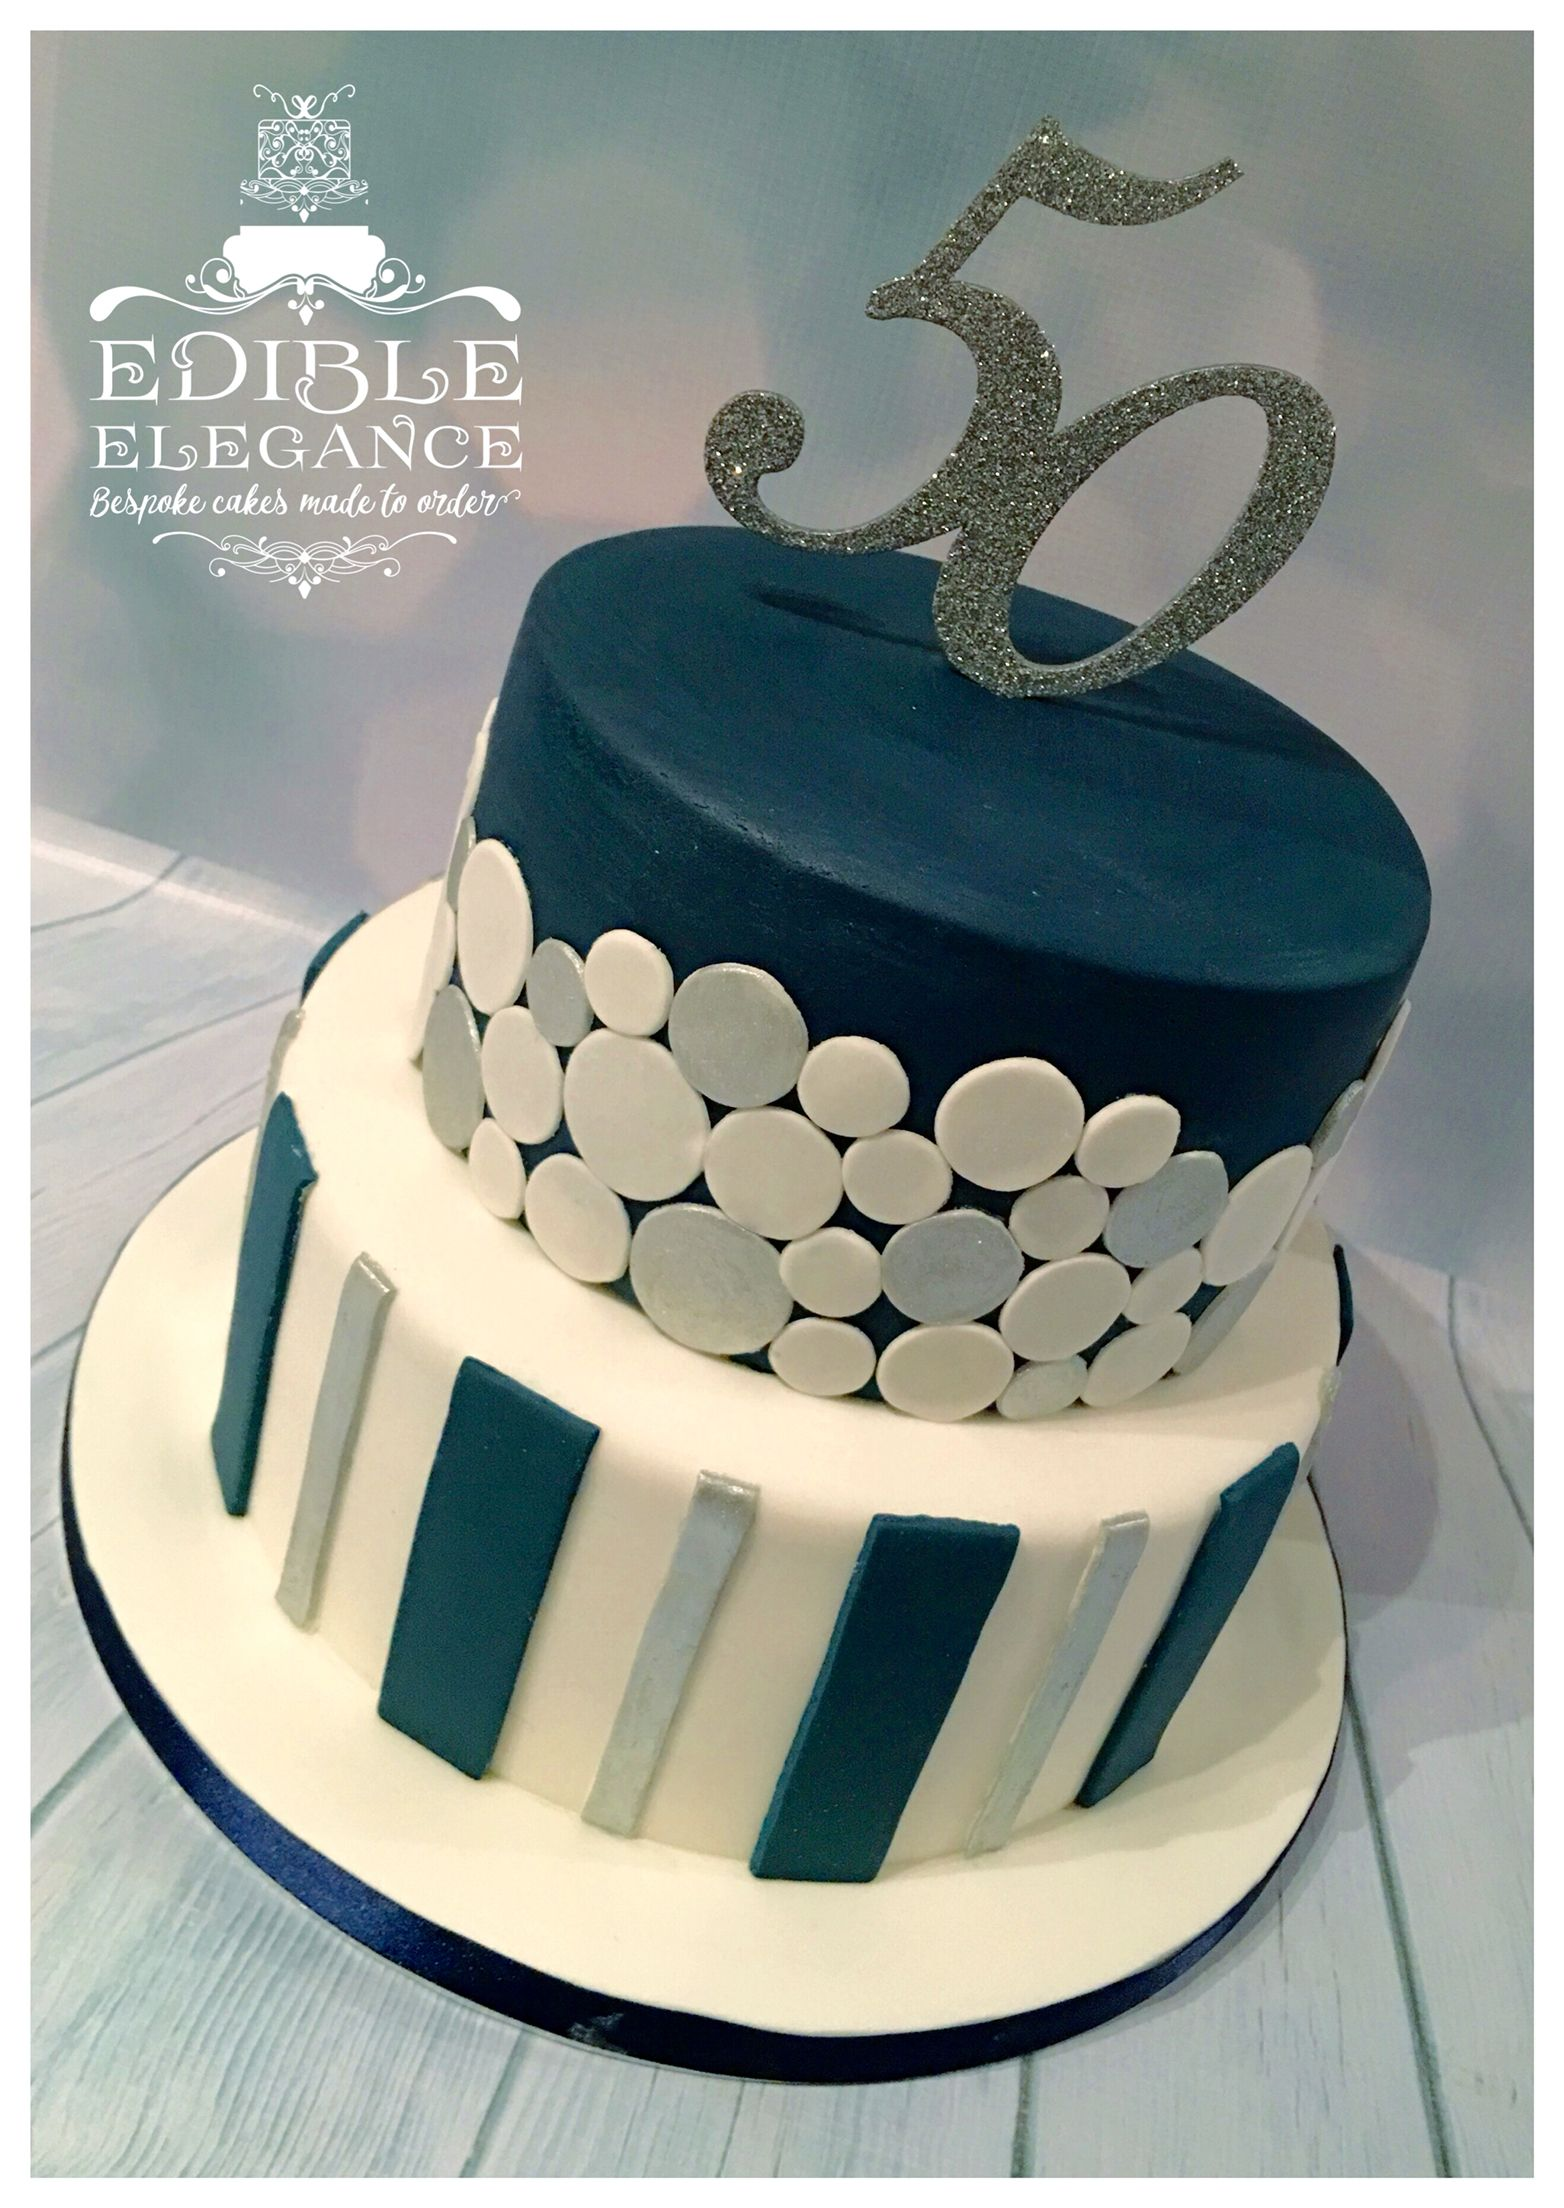 50th Birthday Cake Contemporary Design In Masculine Blue White And Silver